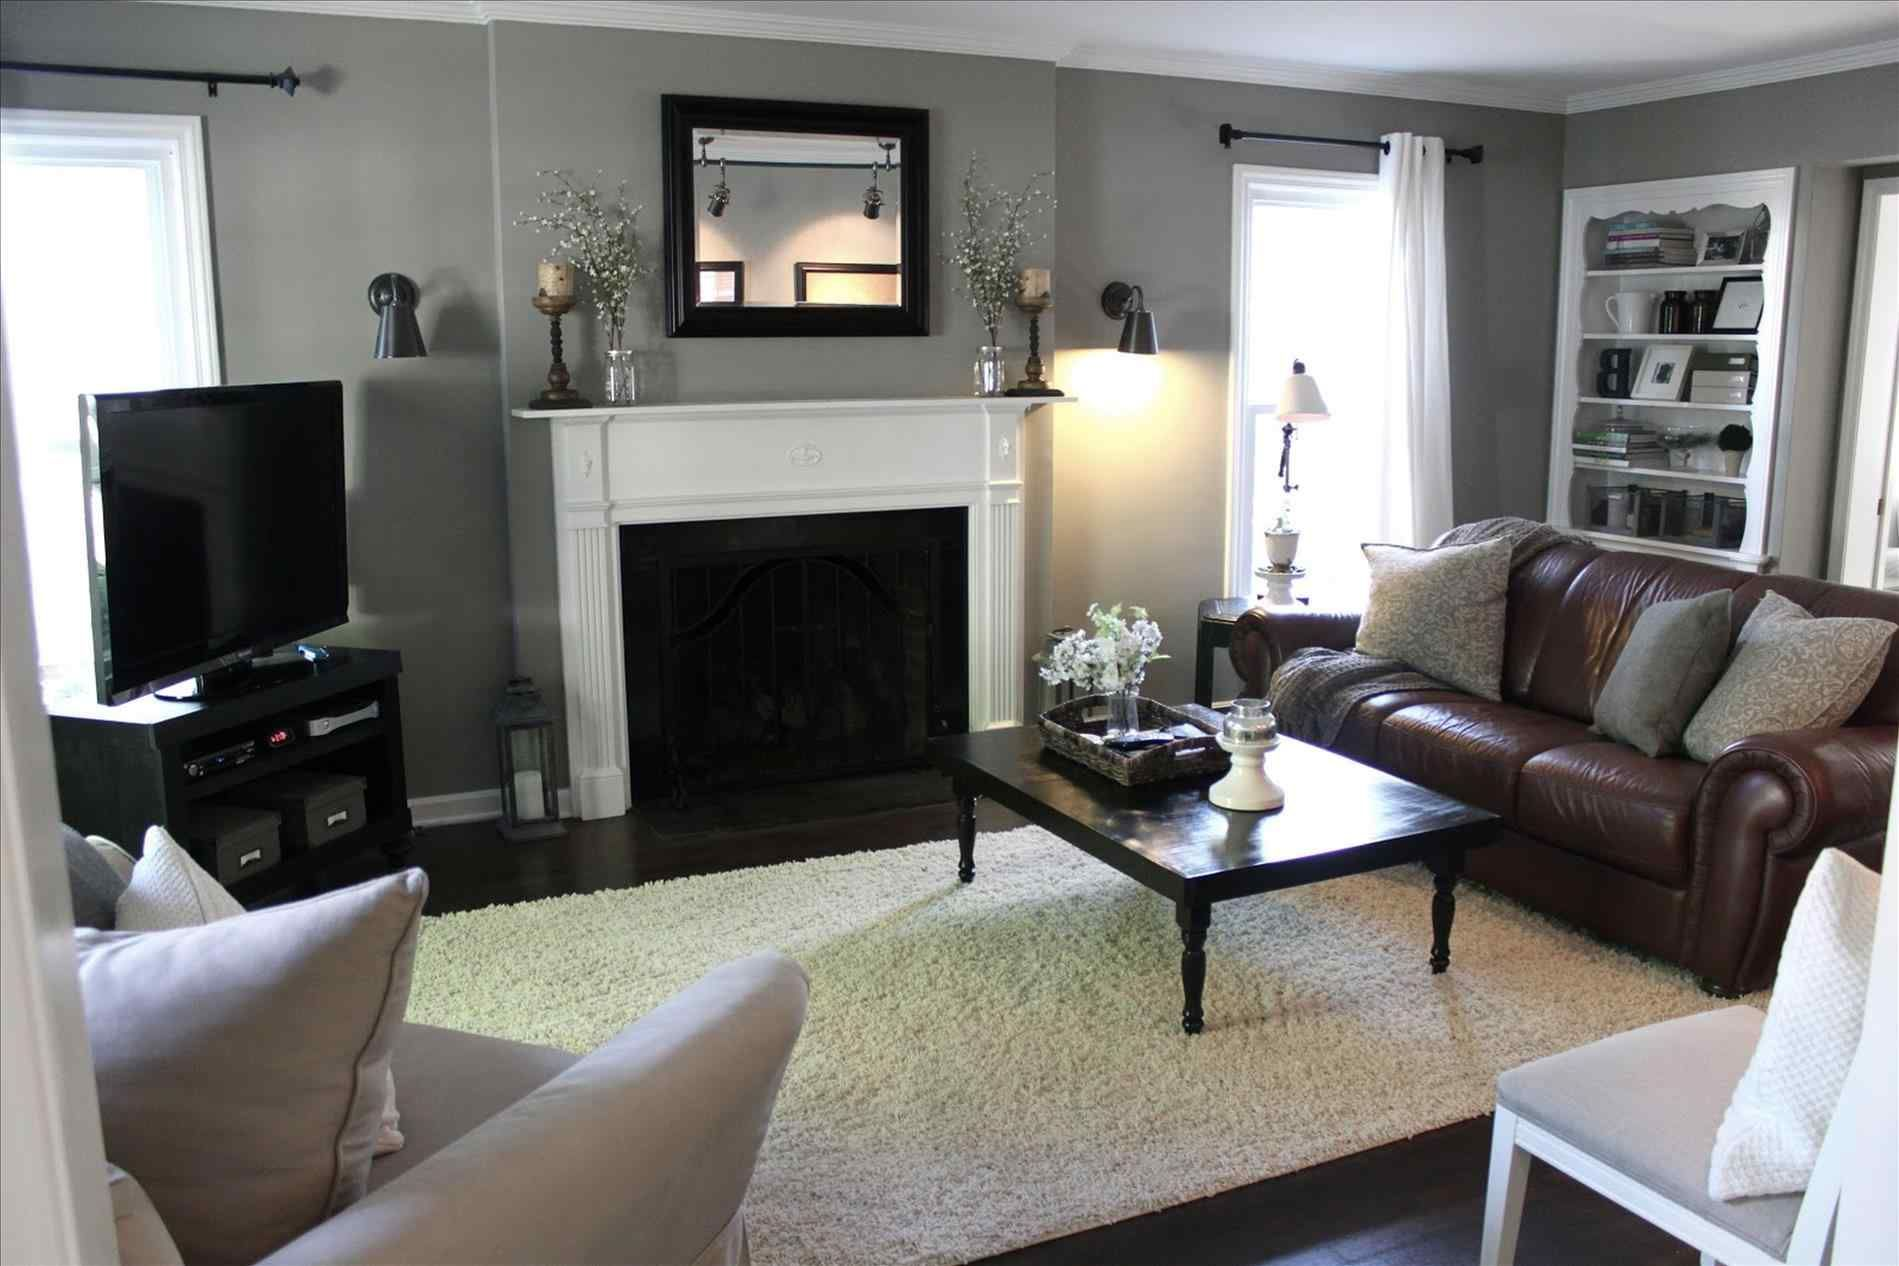 14 Best Light Gray Paint Ideas For Living Room Brown Couch